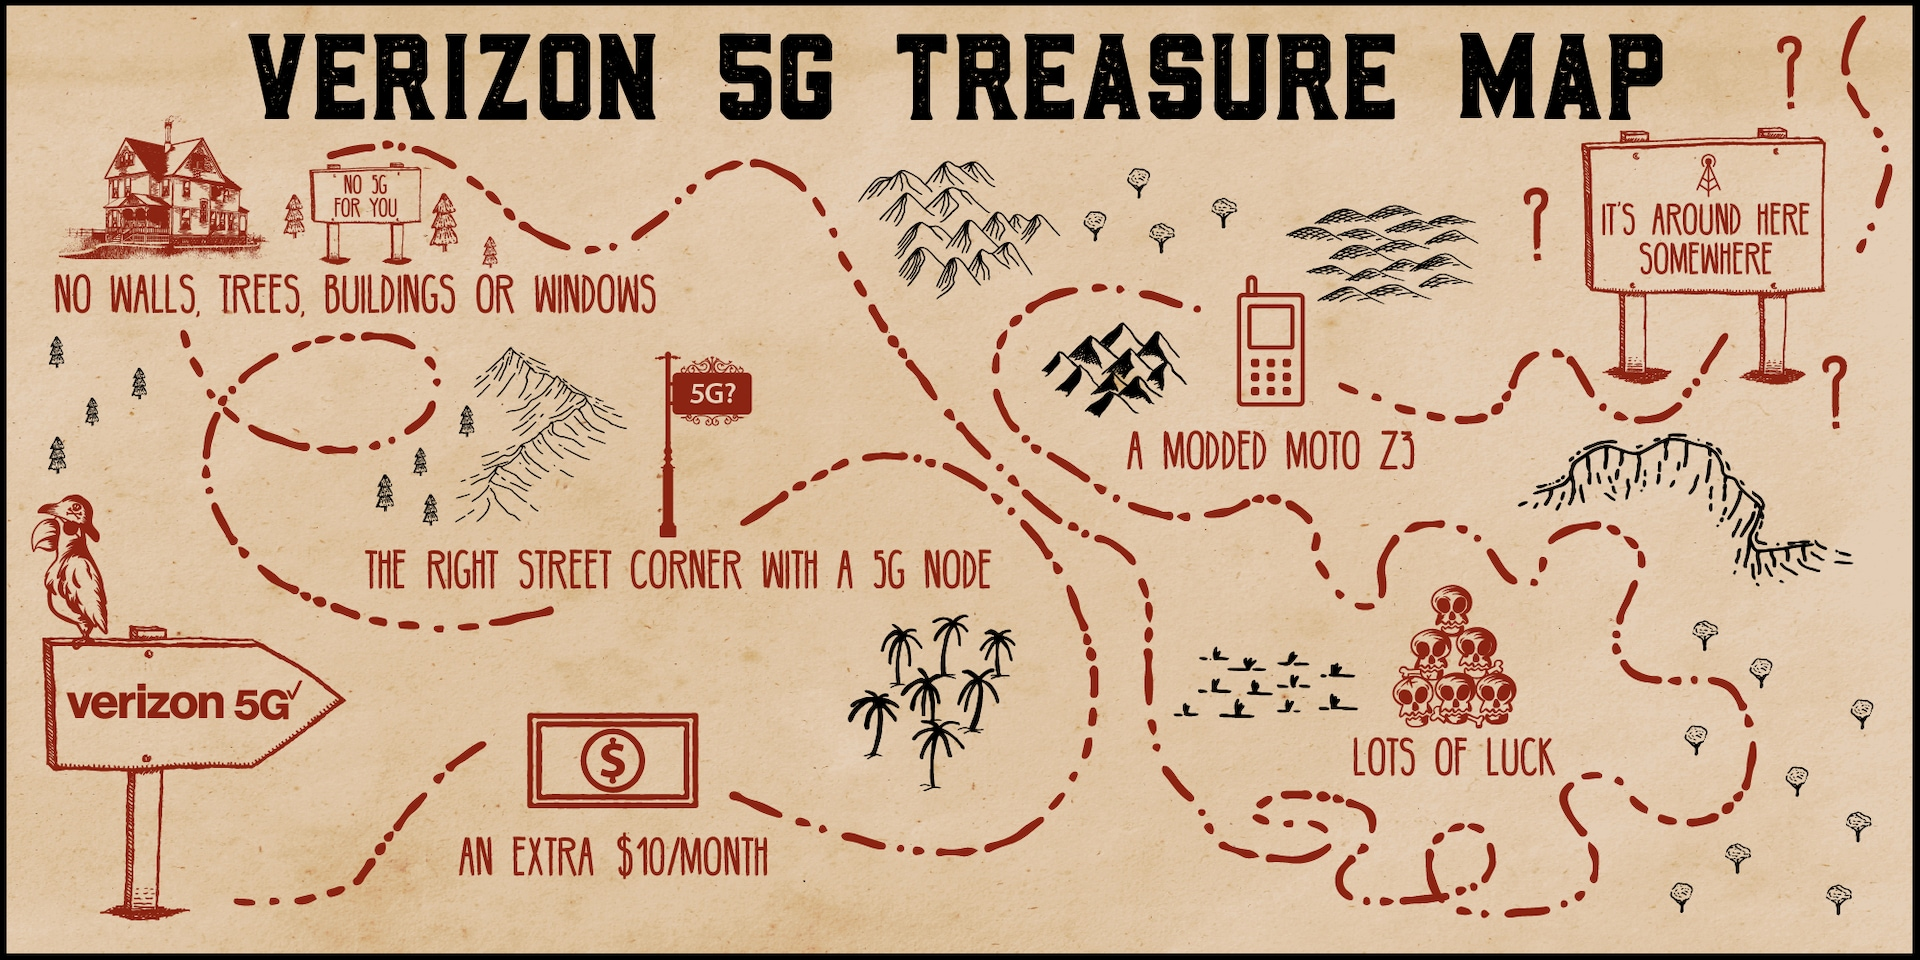 Verizon 5G Treasure Hunt Map